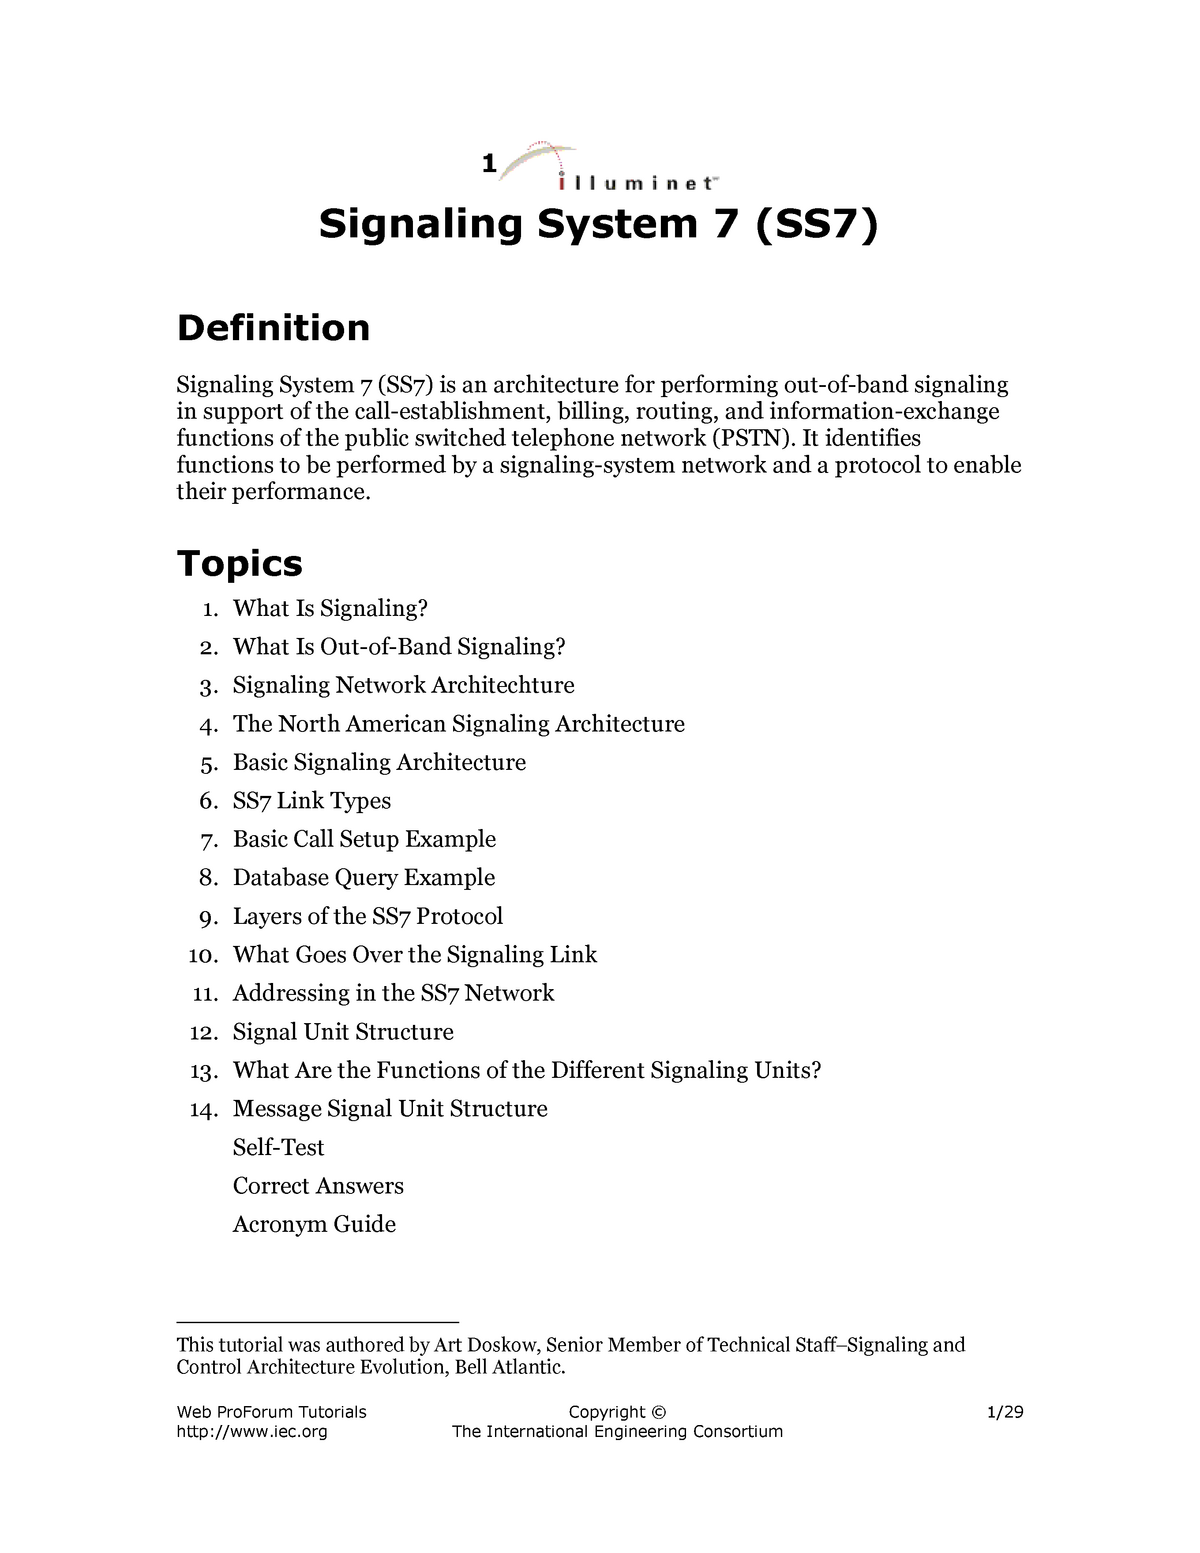 SS7 - notes - MAS355: Comm And Info Systems In Organizations